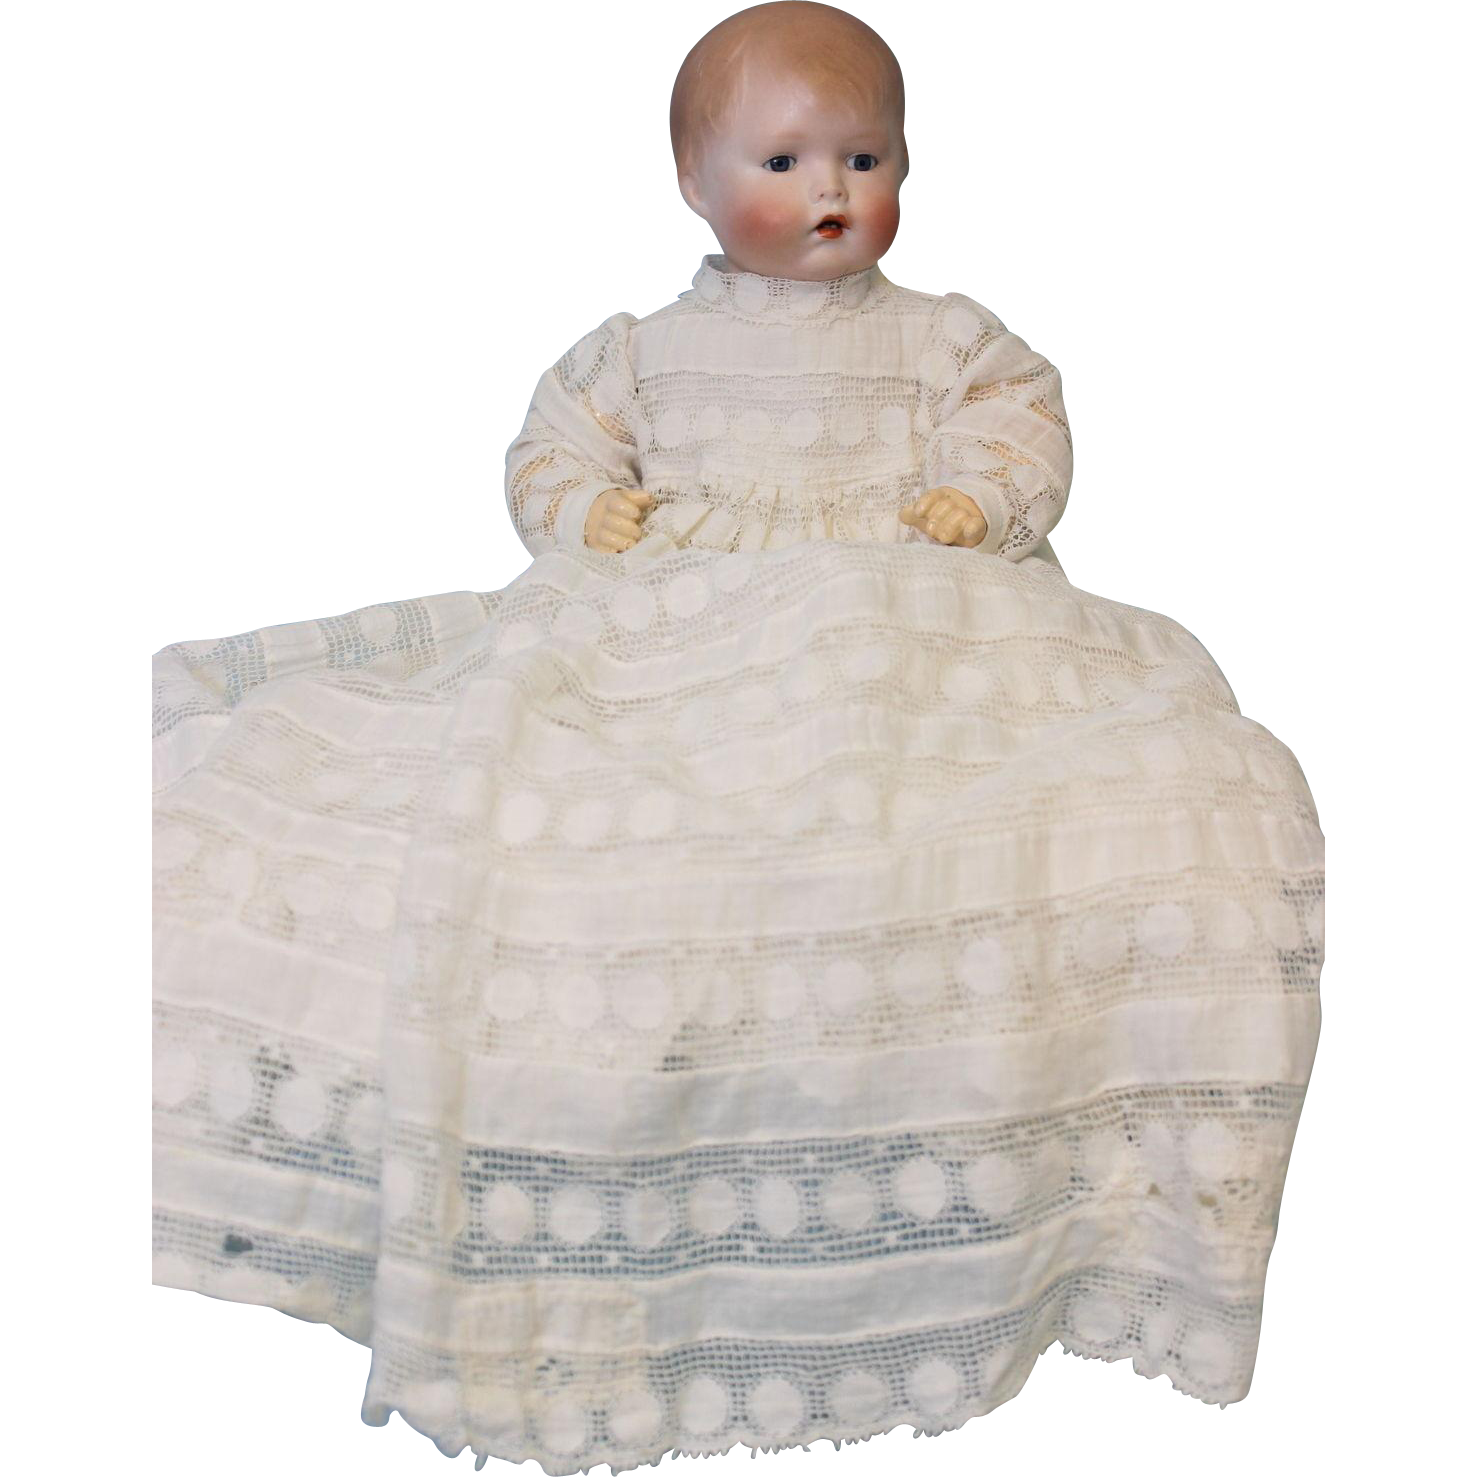 Antique 15 Inch Baby Bo-Kaye Doll designed by Joseph Kallus for Borgfeldt c1920